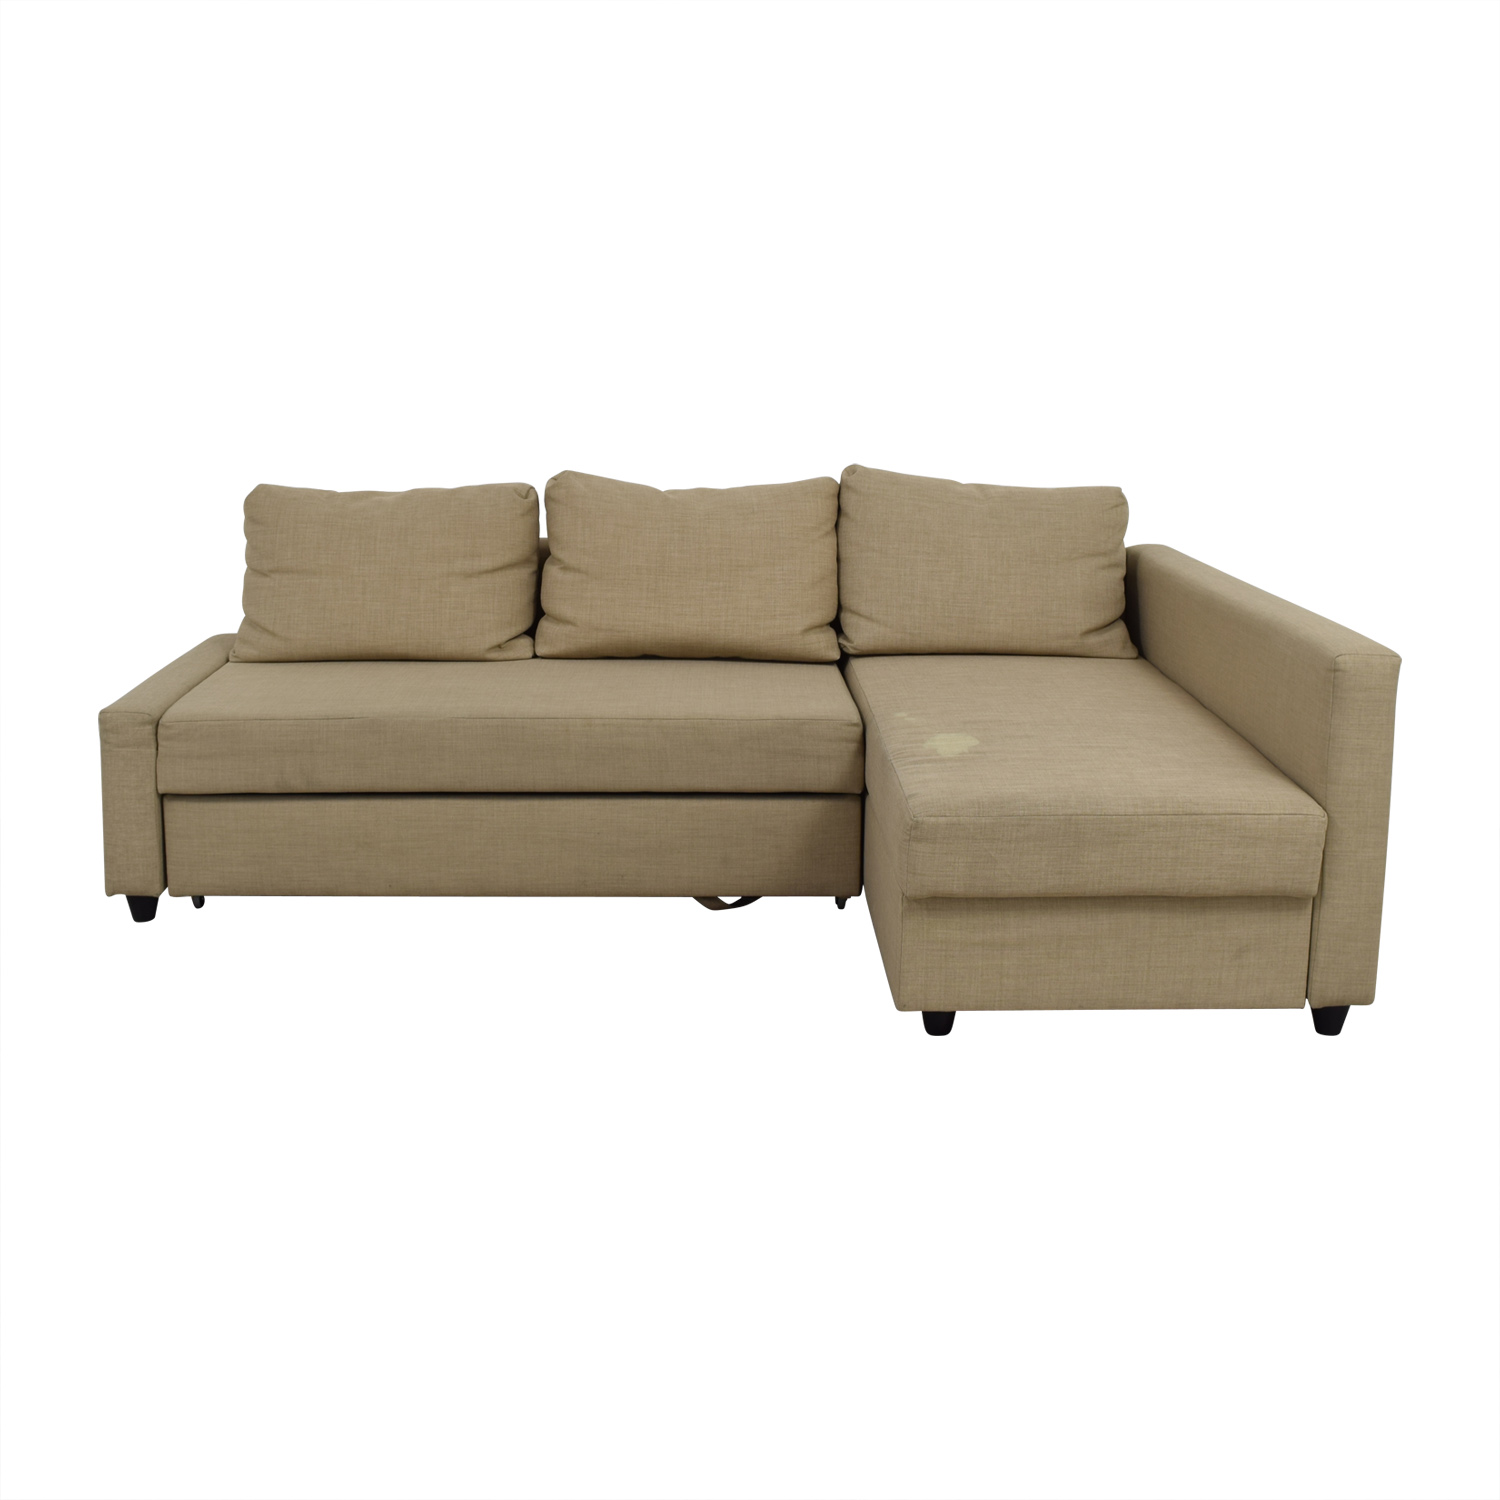 IKEA IKEA Friheten Tan Sleeper Sectional dimensions